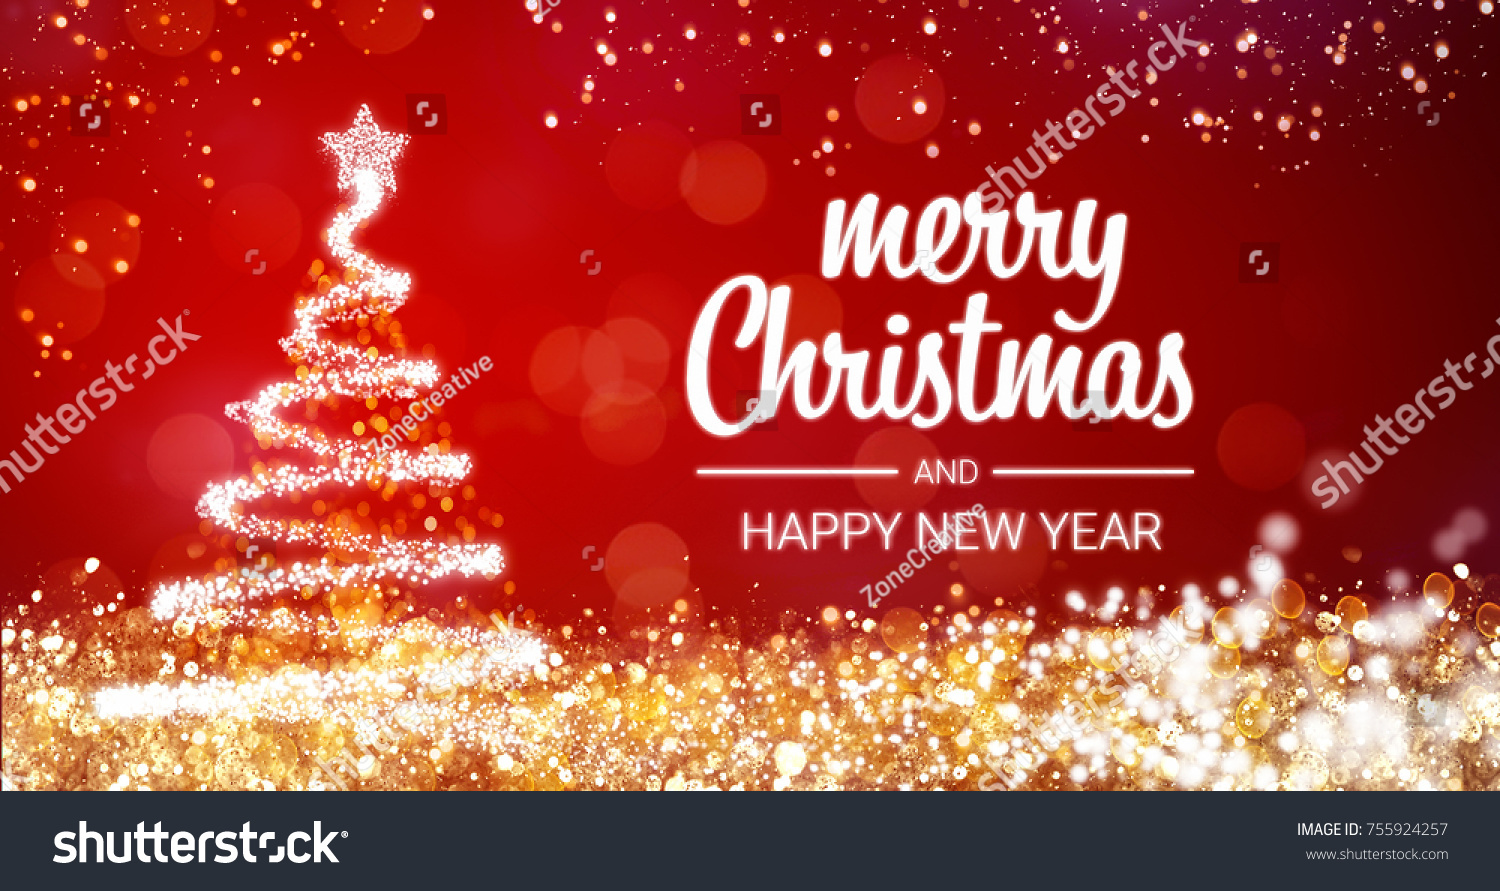 Happy new year greetings messages reception invitation wording holiday and new year greetings messages personalized business stock photo sparkling gold and silver lights xmas tree merry christmas and happy new year kristyandbryce Images